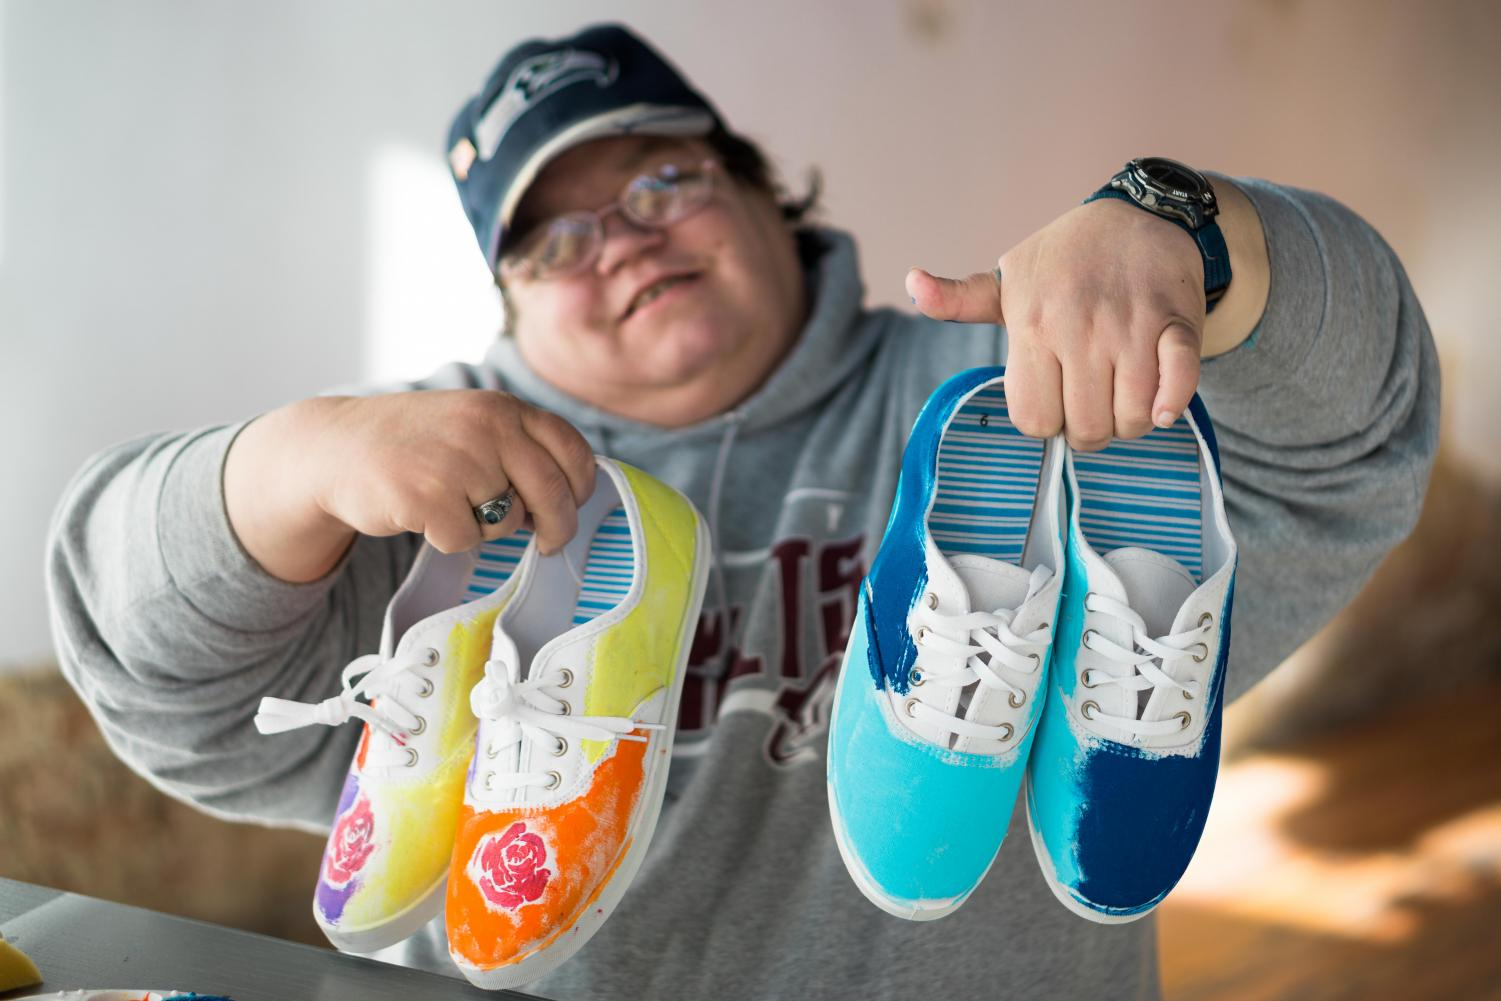 A Creative Souls employee holds up shoes they painted. The local shoe company, which specializes in hiring people with disabilites, is attempting to raise $50,000 to expand hiring.